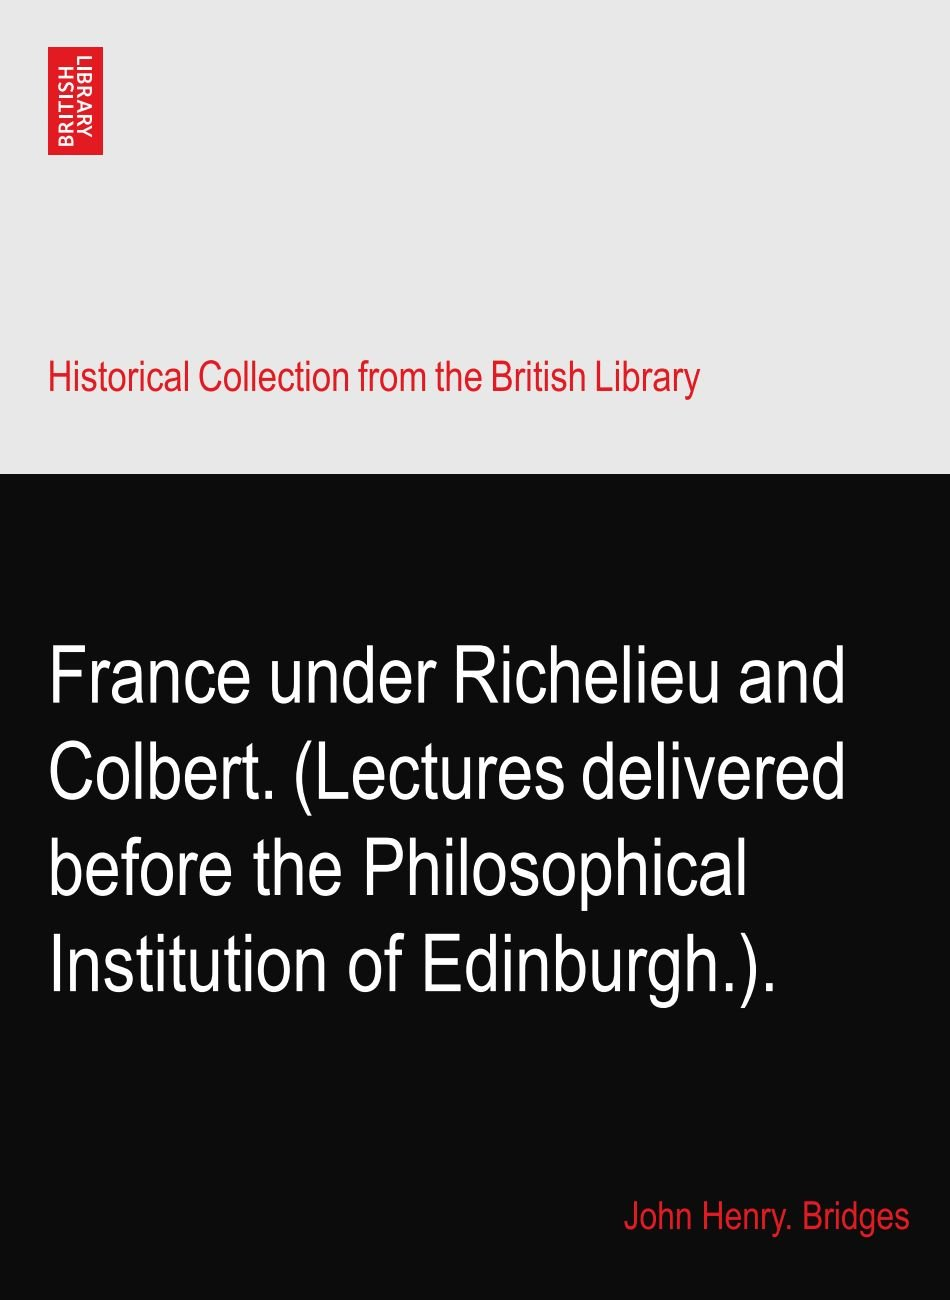 Download France under Richelieu and Colbert. (Lectures delivered before the Philosophical Institution of Edinburgh.). PDF ePub book